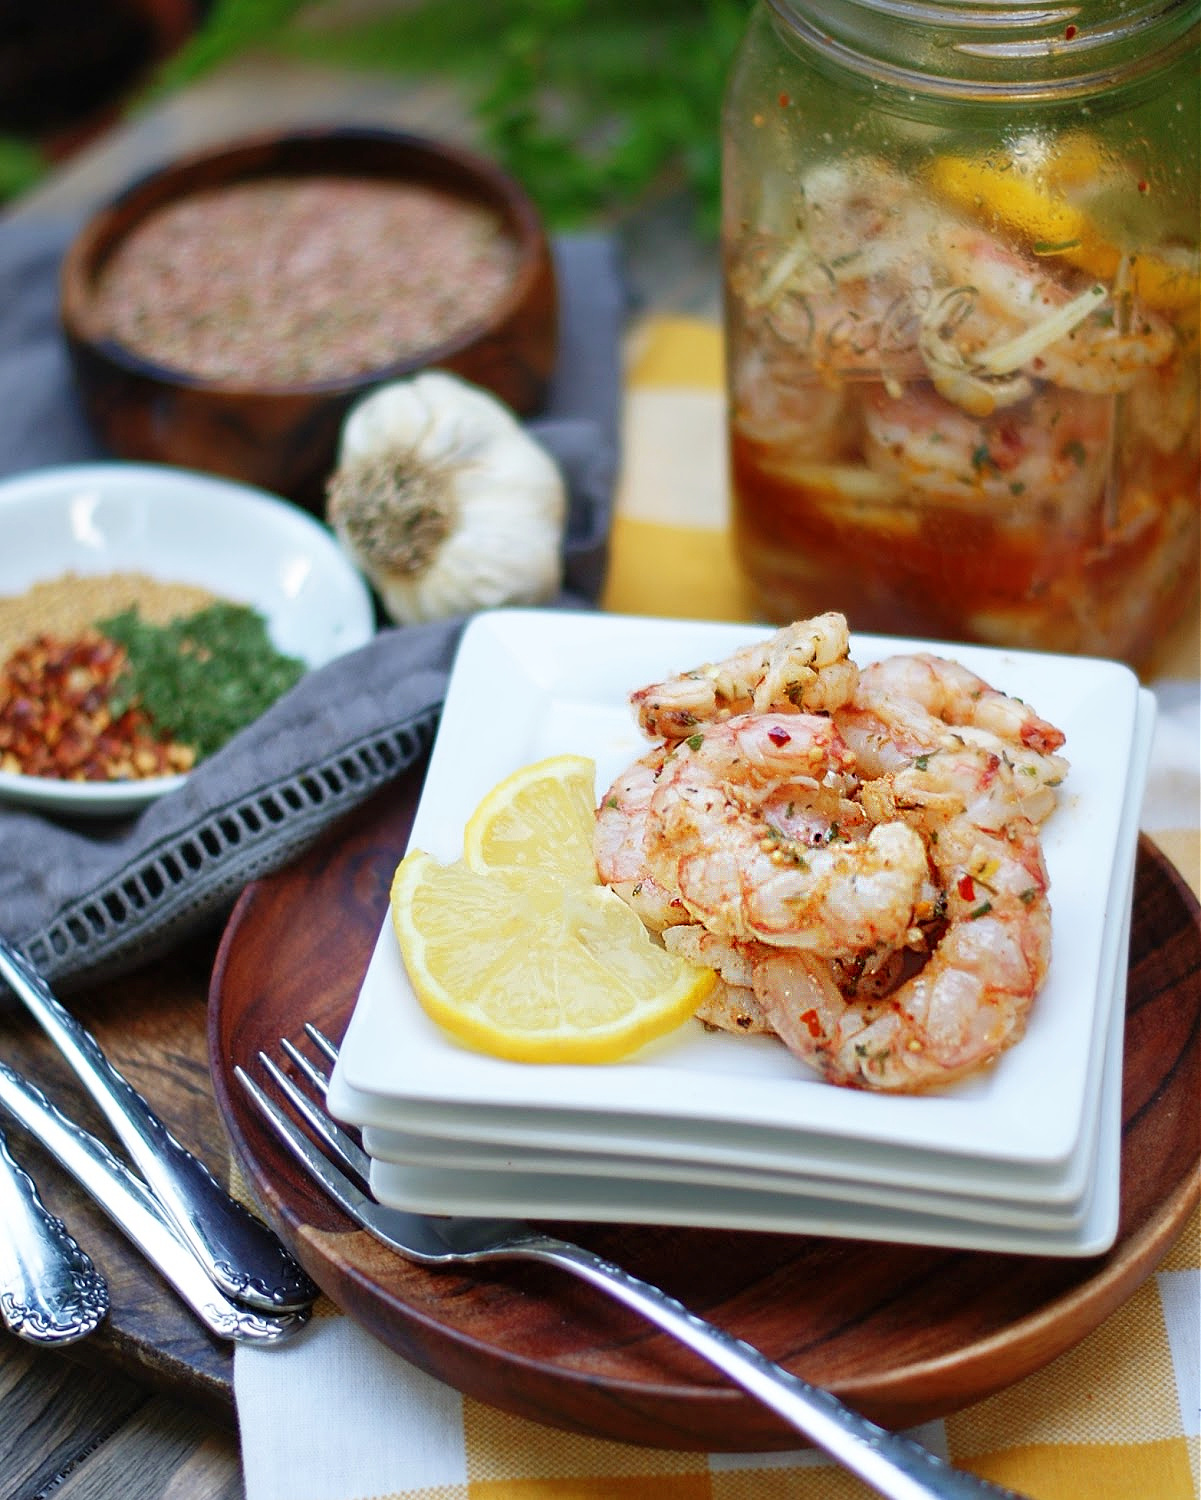 Finish photo with serving of pickled shrimp and brining jar